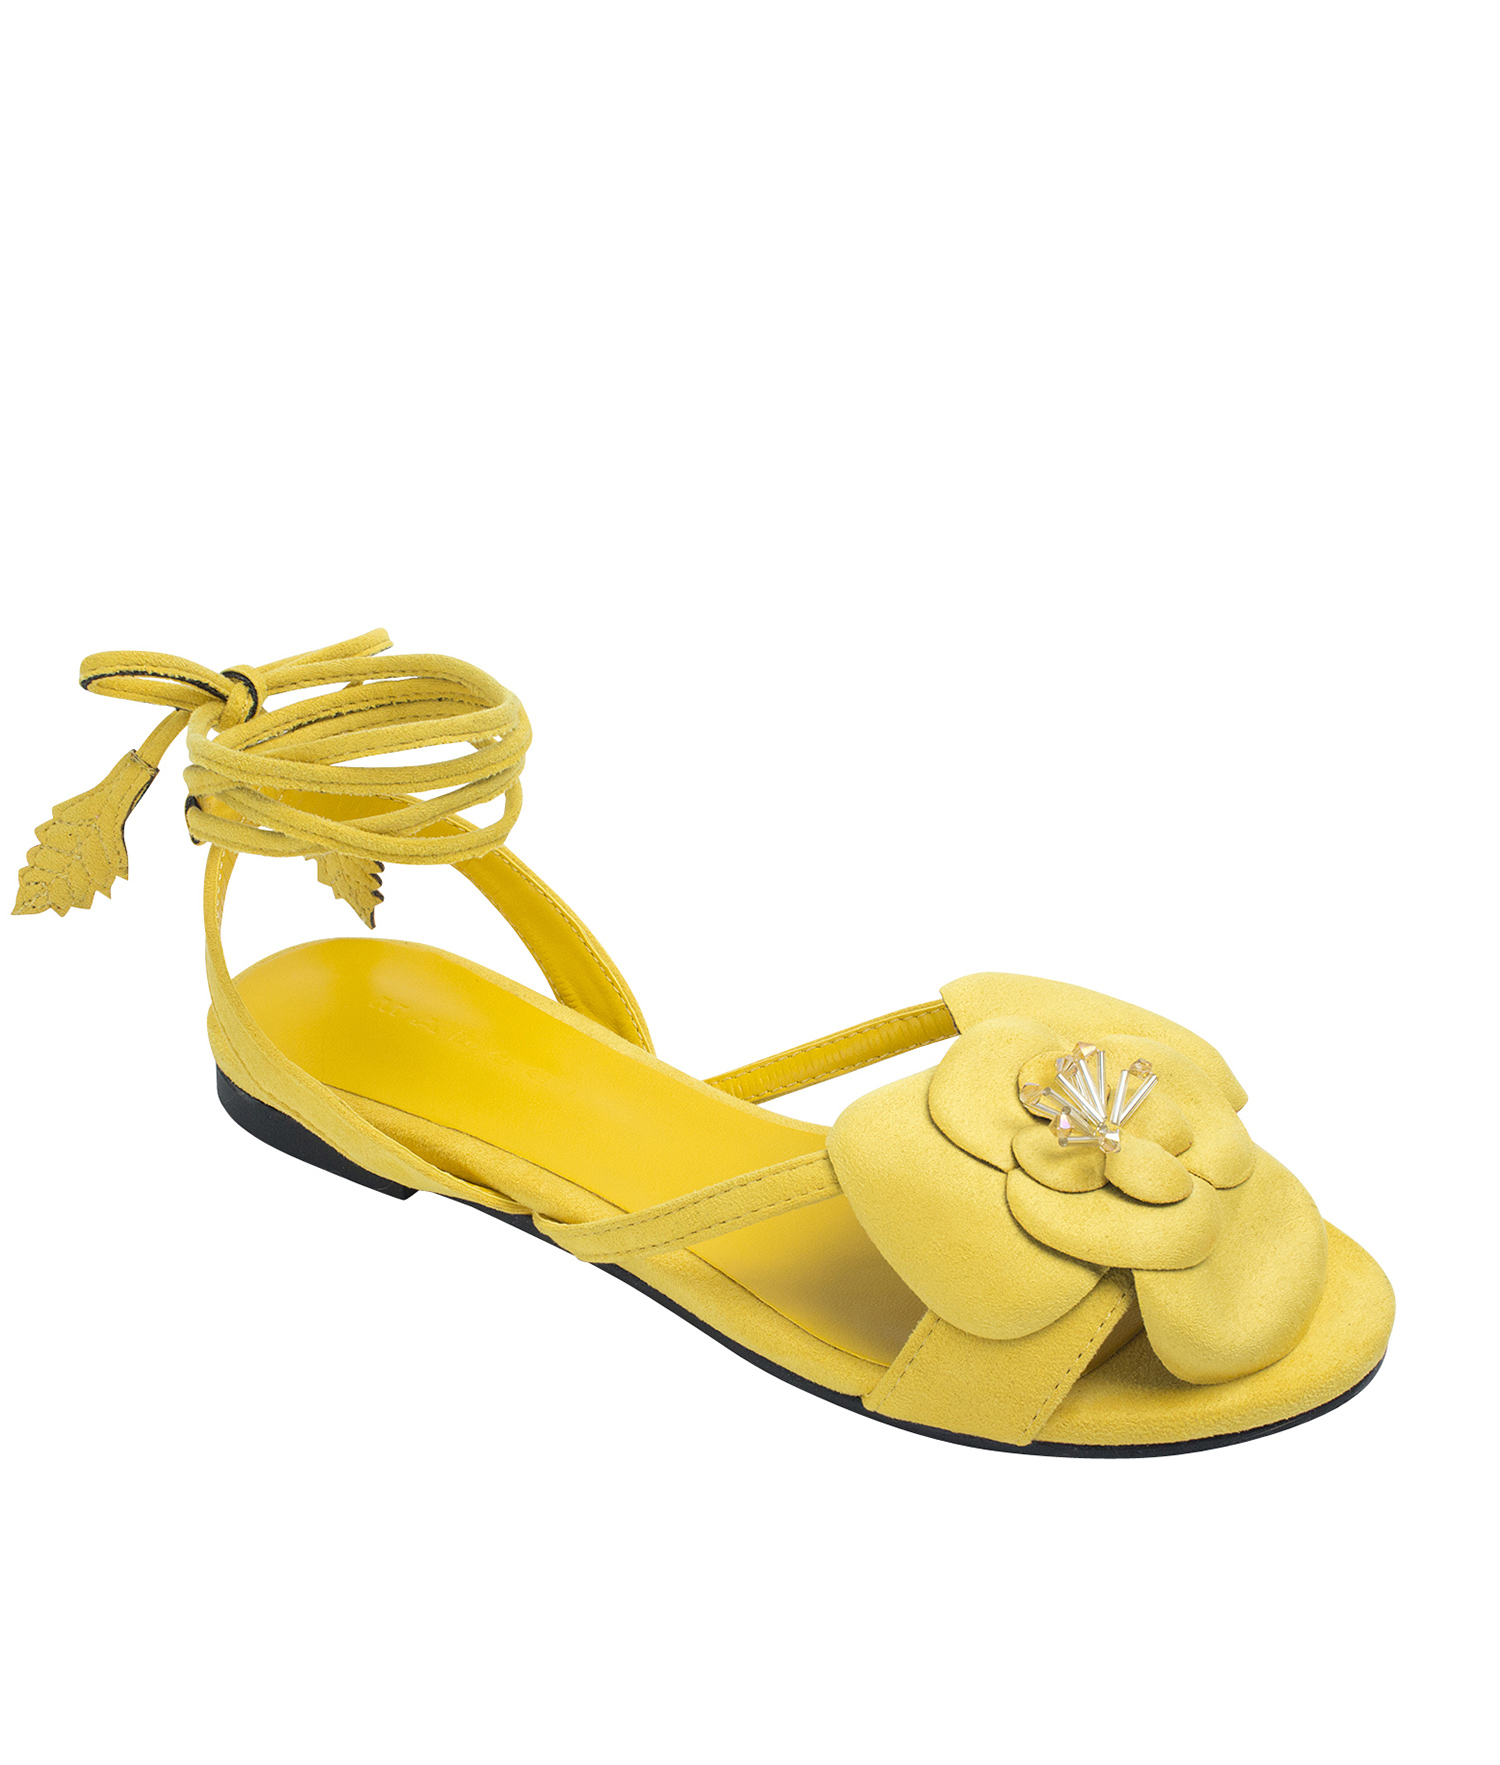 94f6e392c46 Annakastle Womens Flower Ankle-Wrap Flat Sandals Yellow